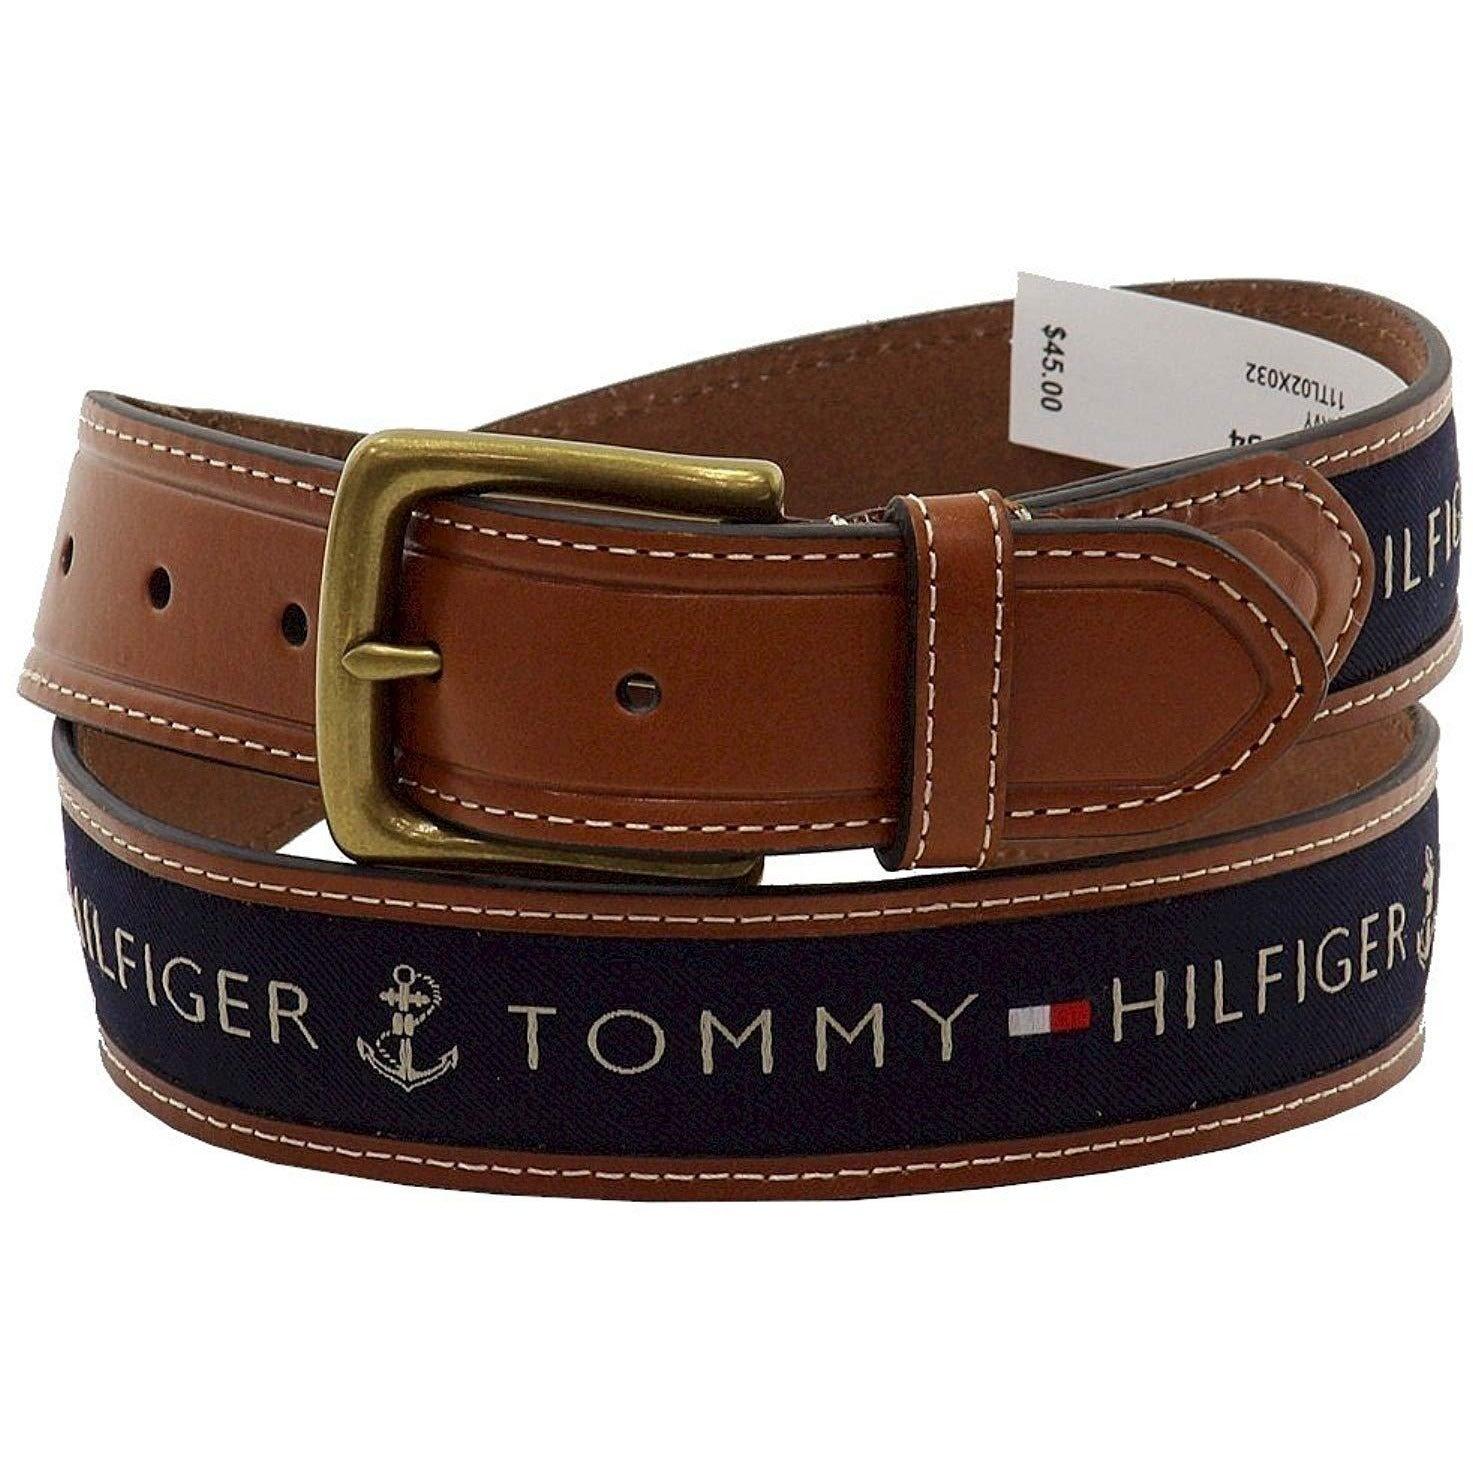 Tommy Hilfiger 11TL02X032 Leather Belt For Men Size 38